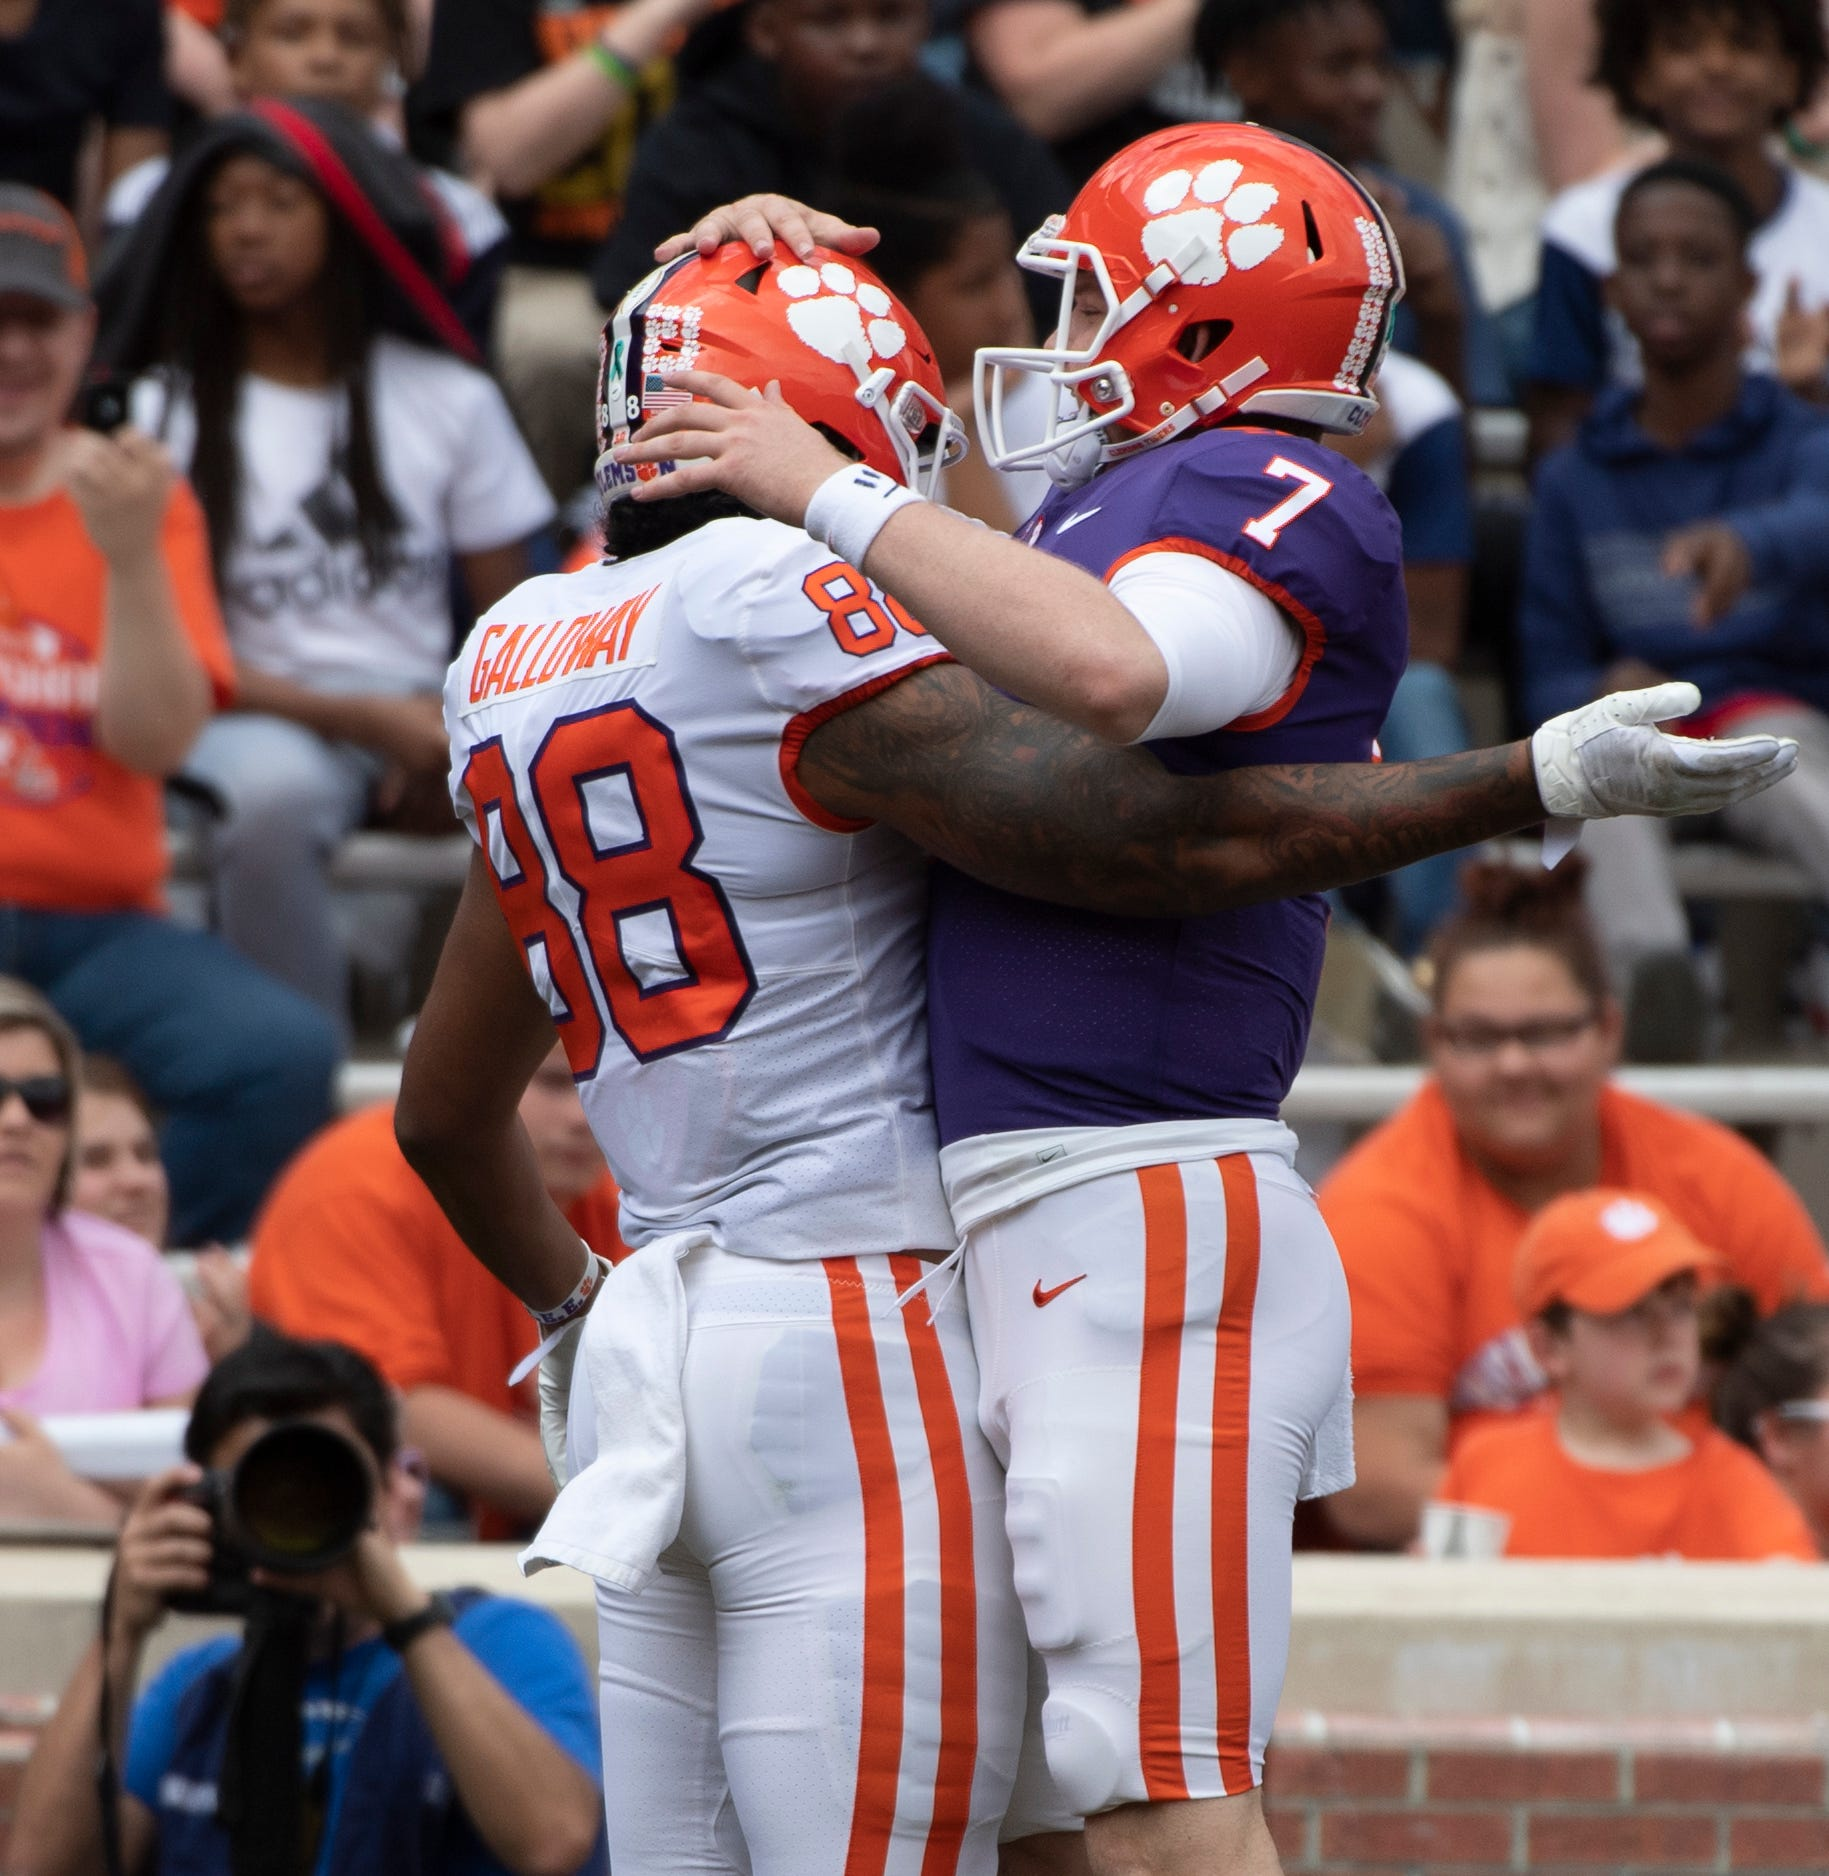 So who will replace Braden Galloway at tight end for Clemson football team?